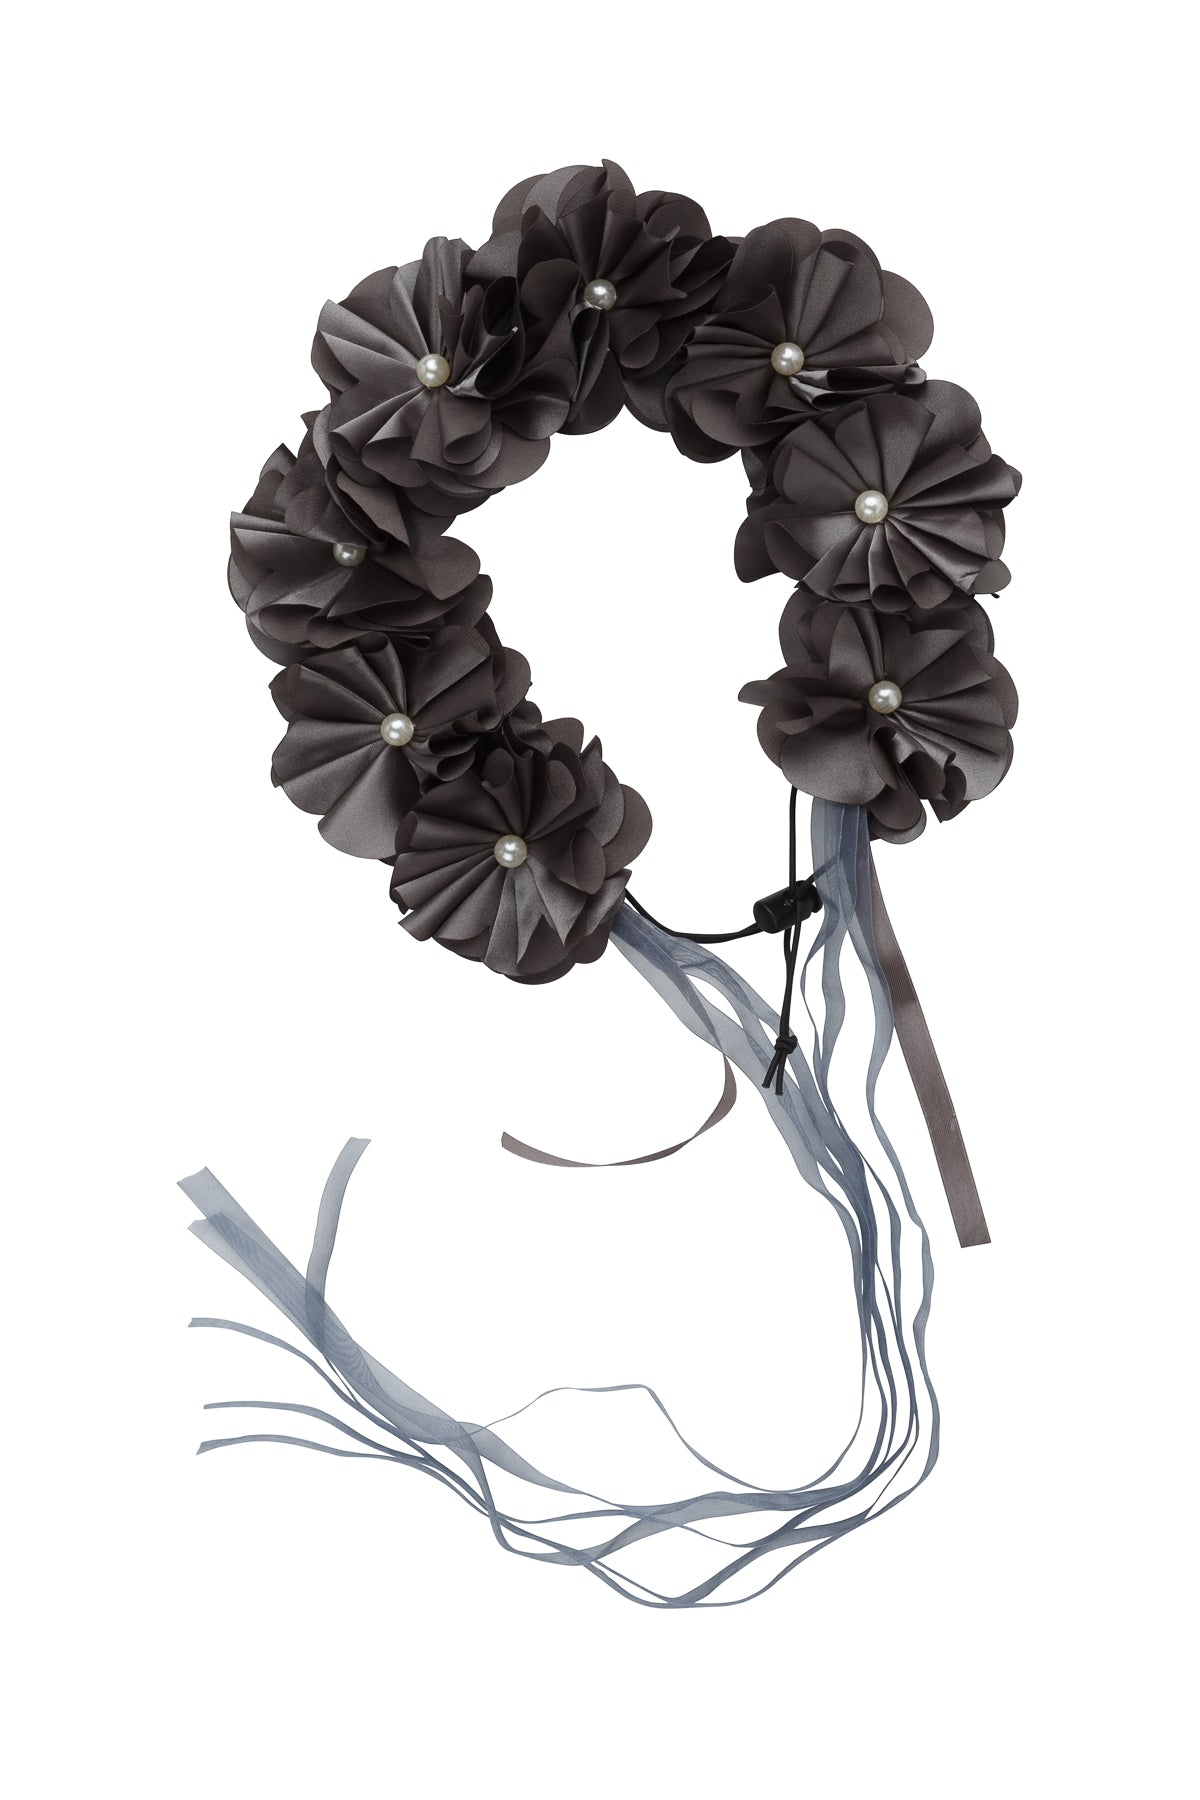 Floral Wreath Full - Charcoal - PROJECT 6, modest fashion